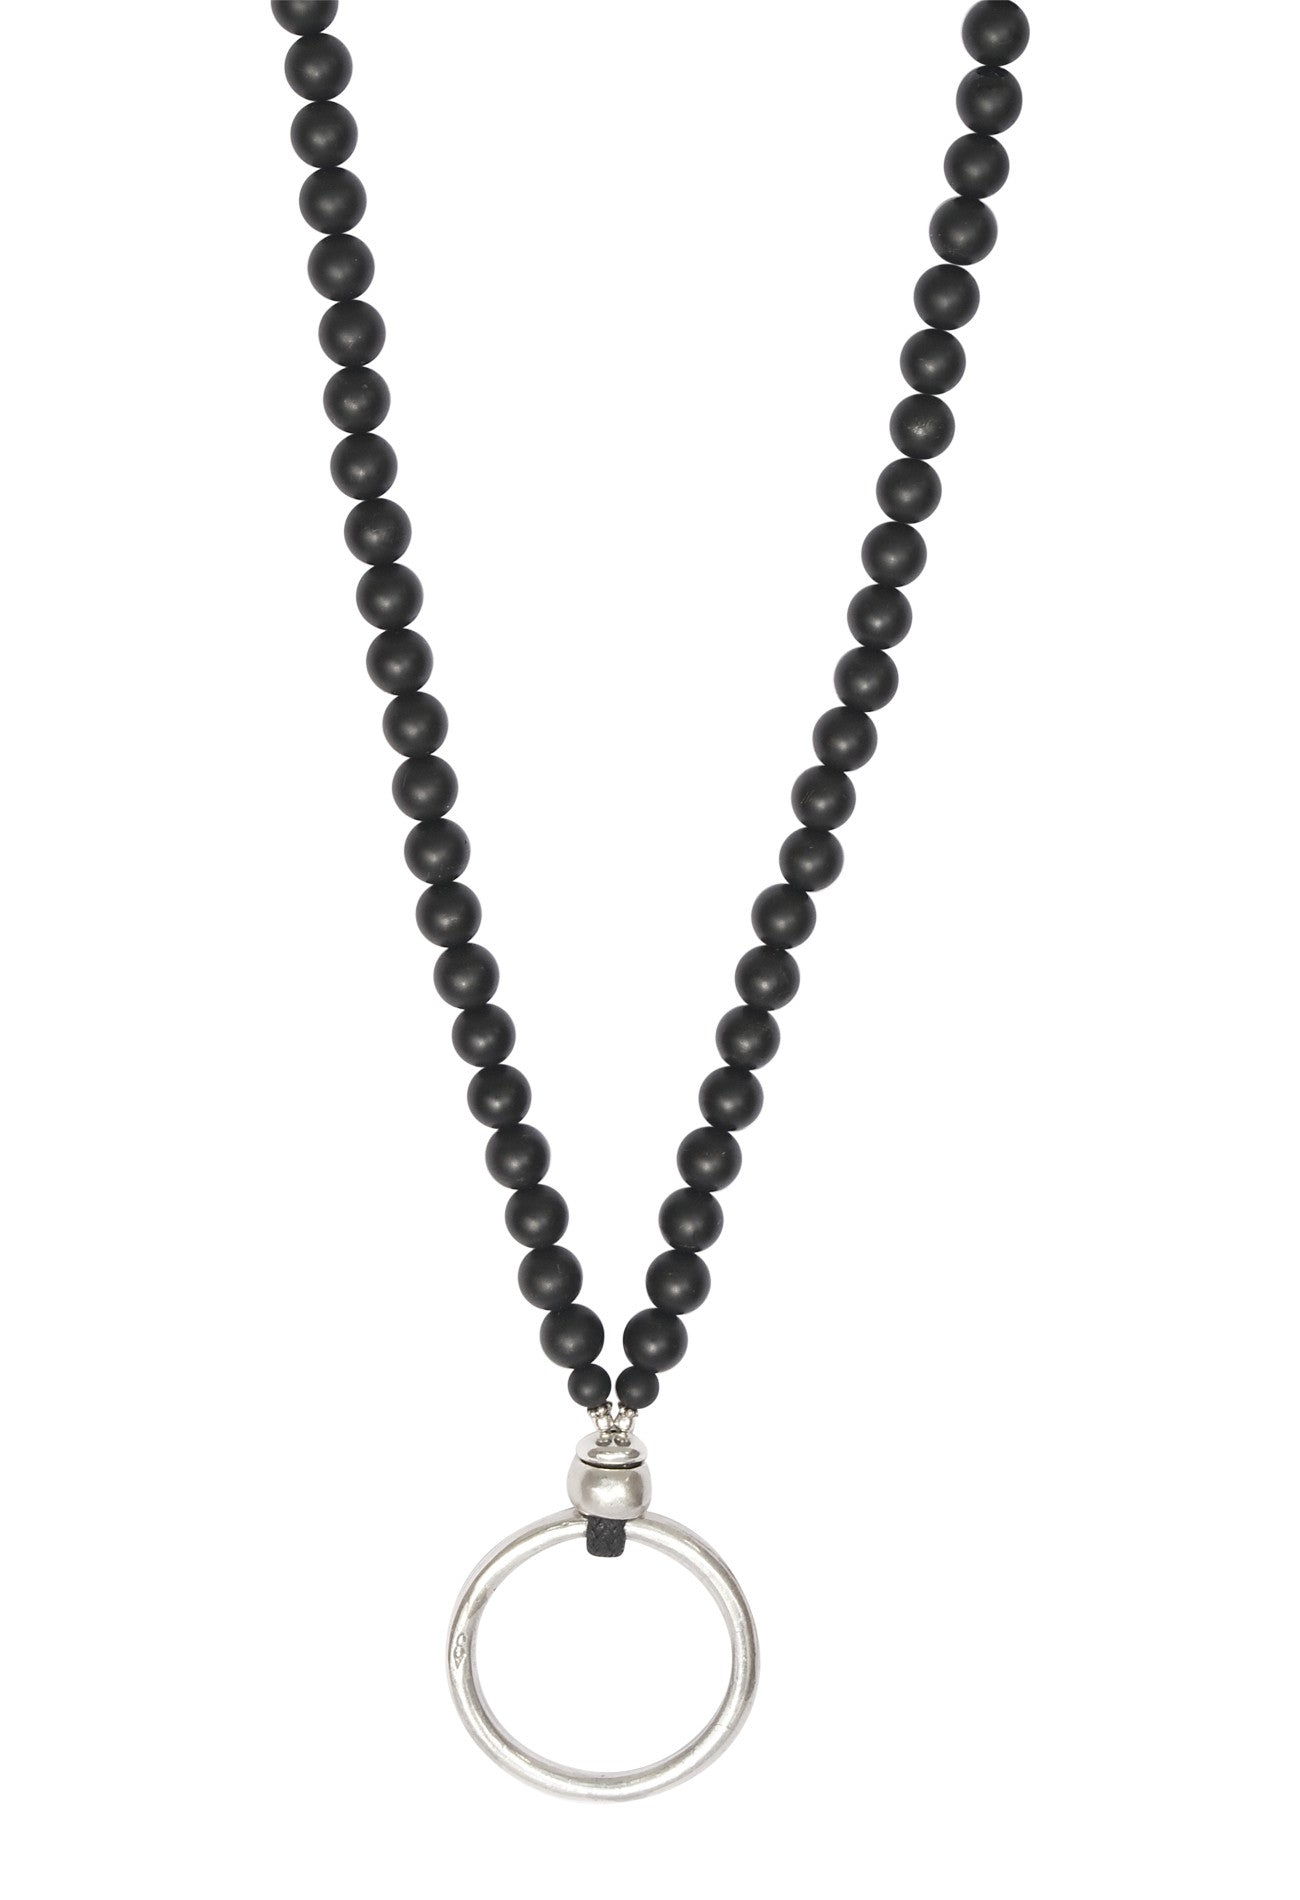 Clean Black Onyx and Sterling Silver EyeRing Necklace